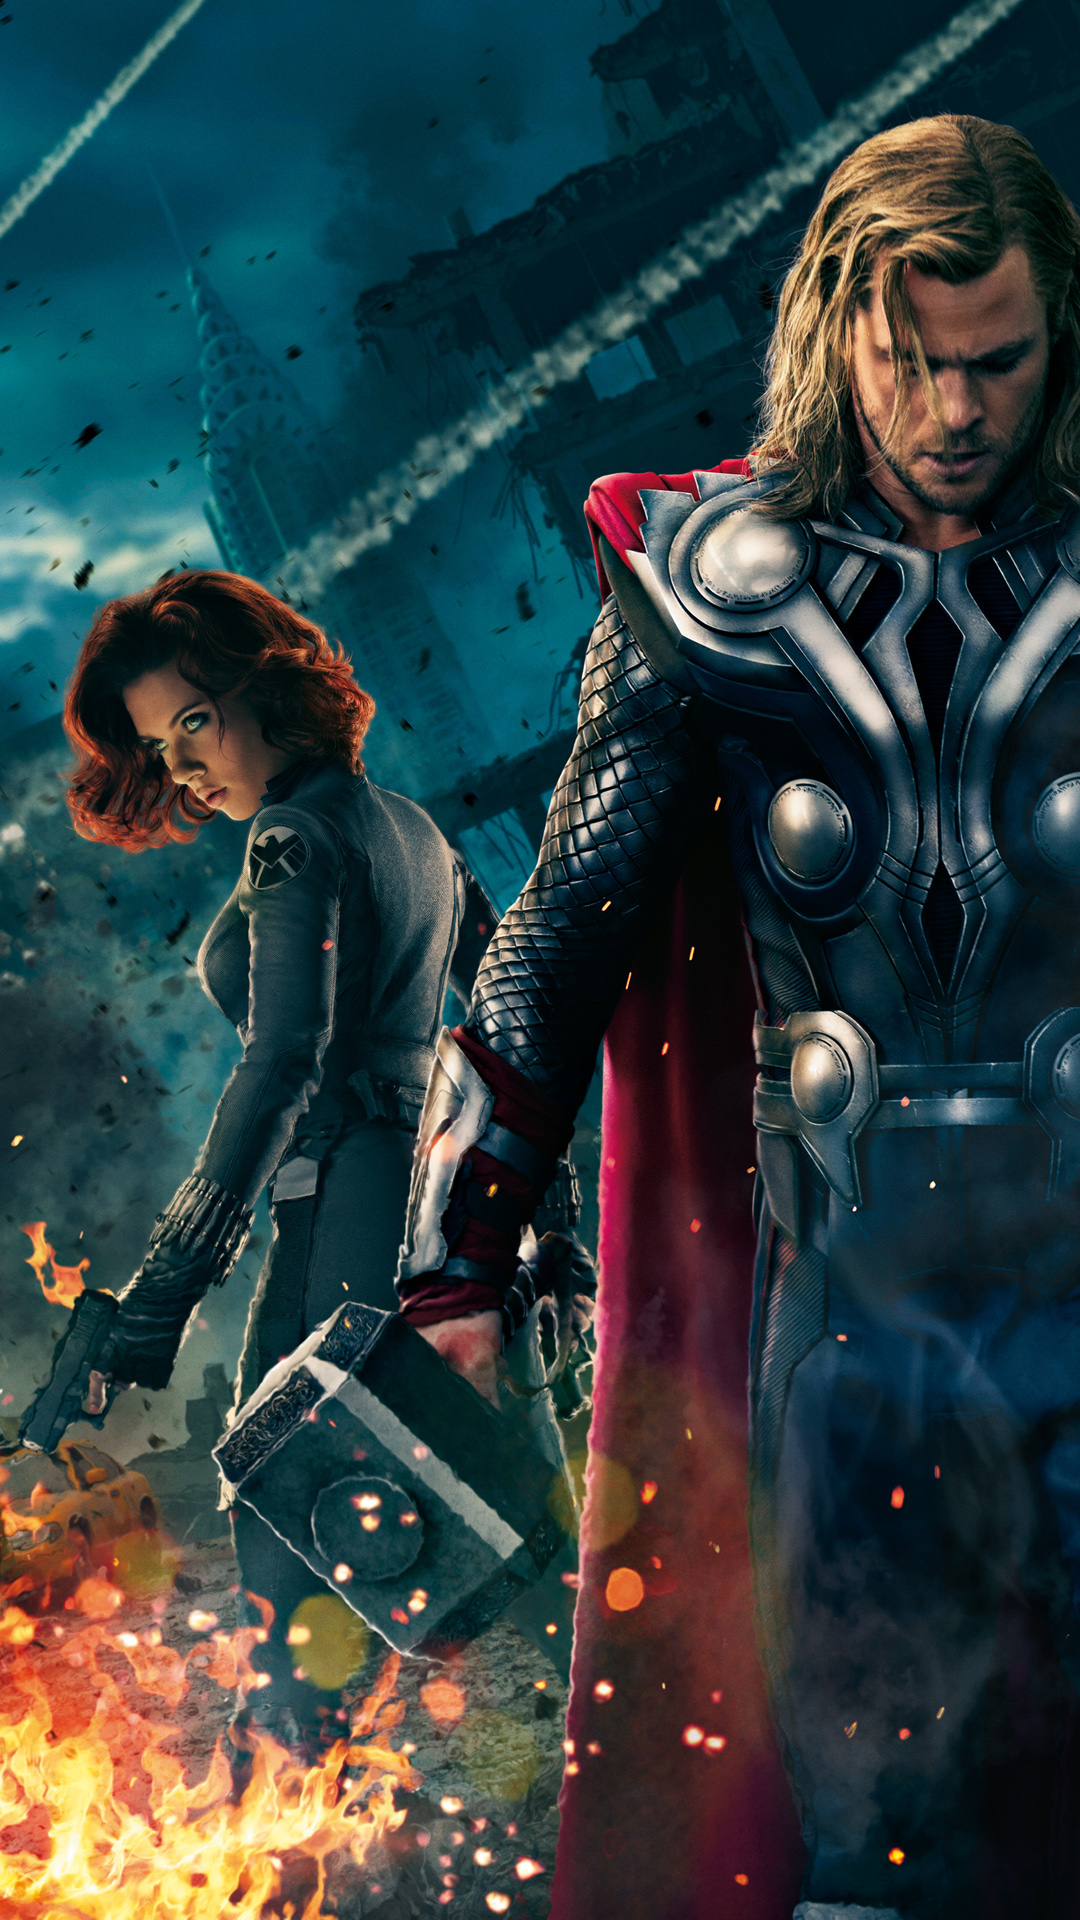 The Avengers Thor and Black Widow   Best htc one wallpapers 1080x1920